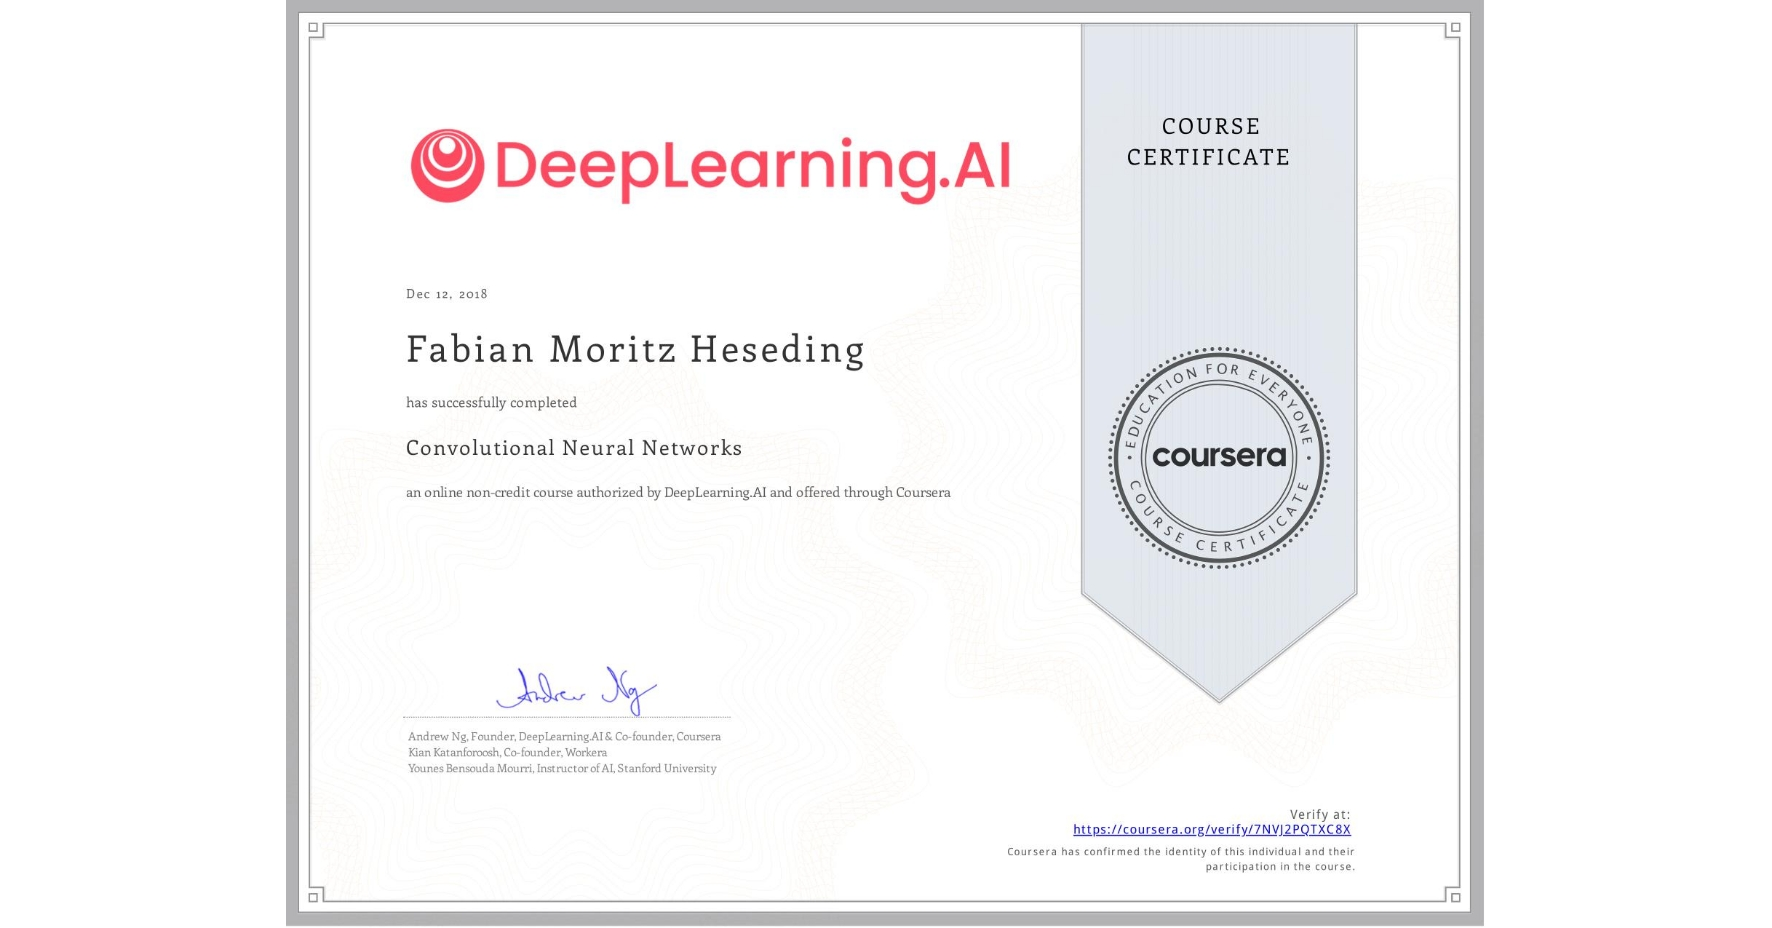 View certificate for Fabian Moritz Heseding, Convolutional Neural Networks, an online non-credit course authorized by DeepLearning.AI and offered through Coursera